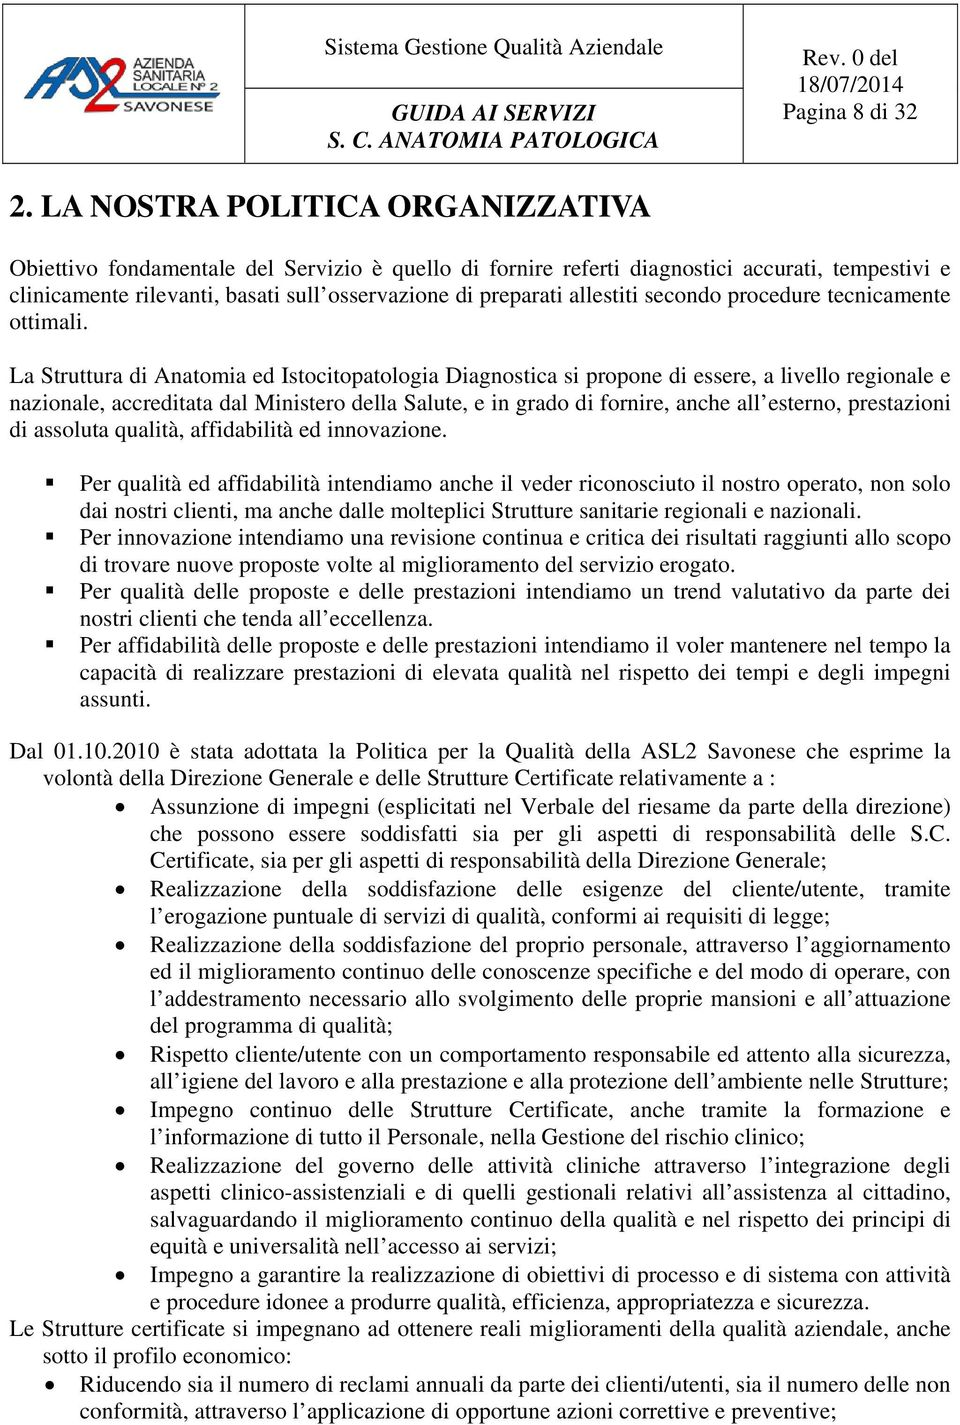 allestiti secondo procedure tecnicamente ottimali.